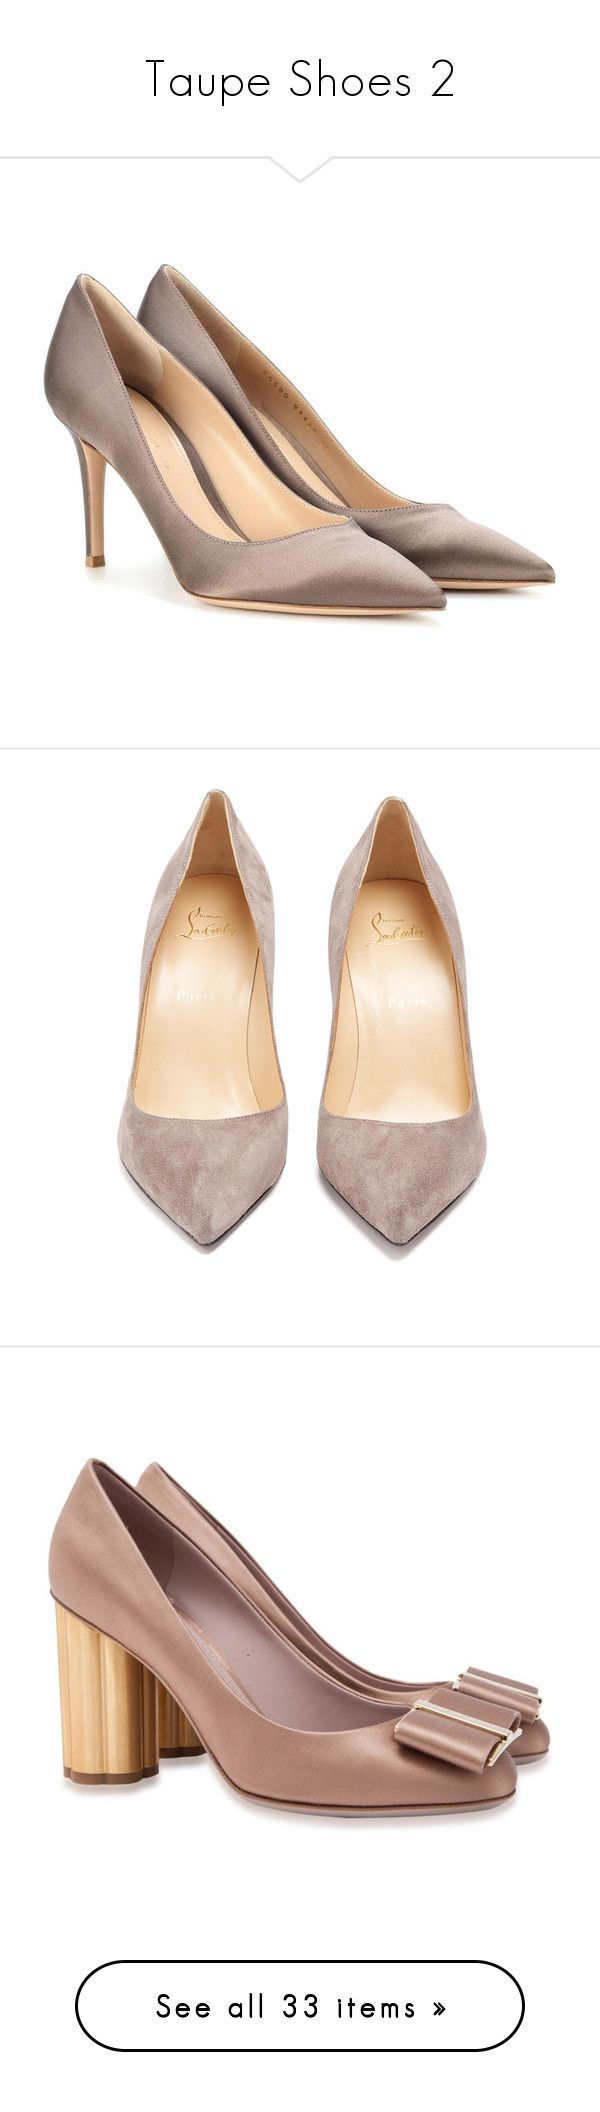 """""""Taupe Shoes 2"""" by franceseattle ❤ liked on Polyvore featuring shoes, pumps, grey, satin shoes, satin pumps, gianvito rossi, gianvito rossi pumps, gianvito rossi shoes, christian louboutin stilettos and christian louboutin pumps"""